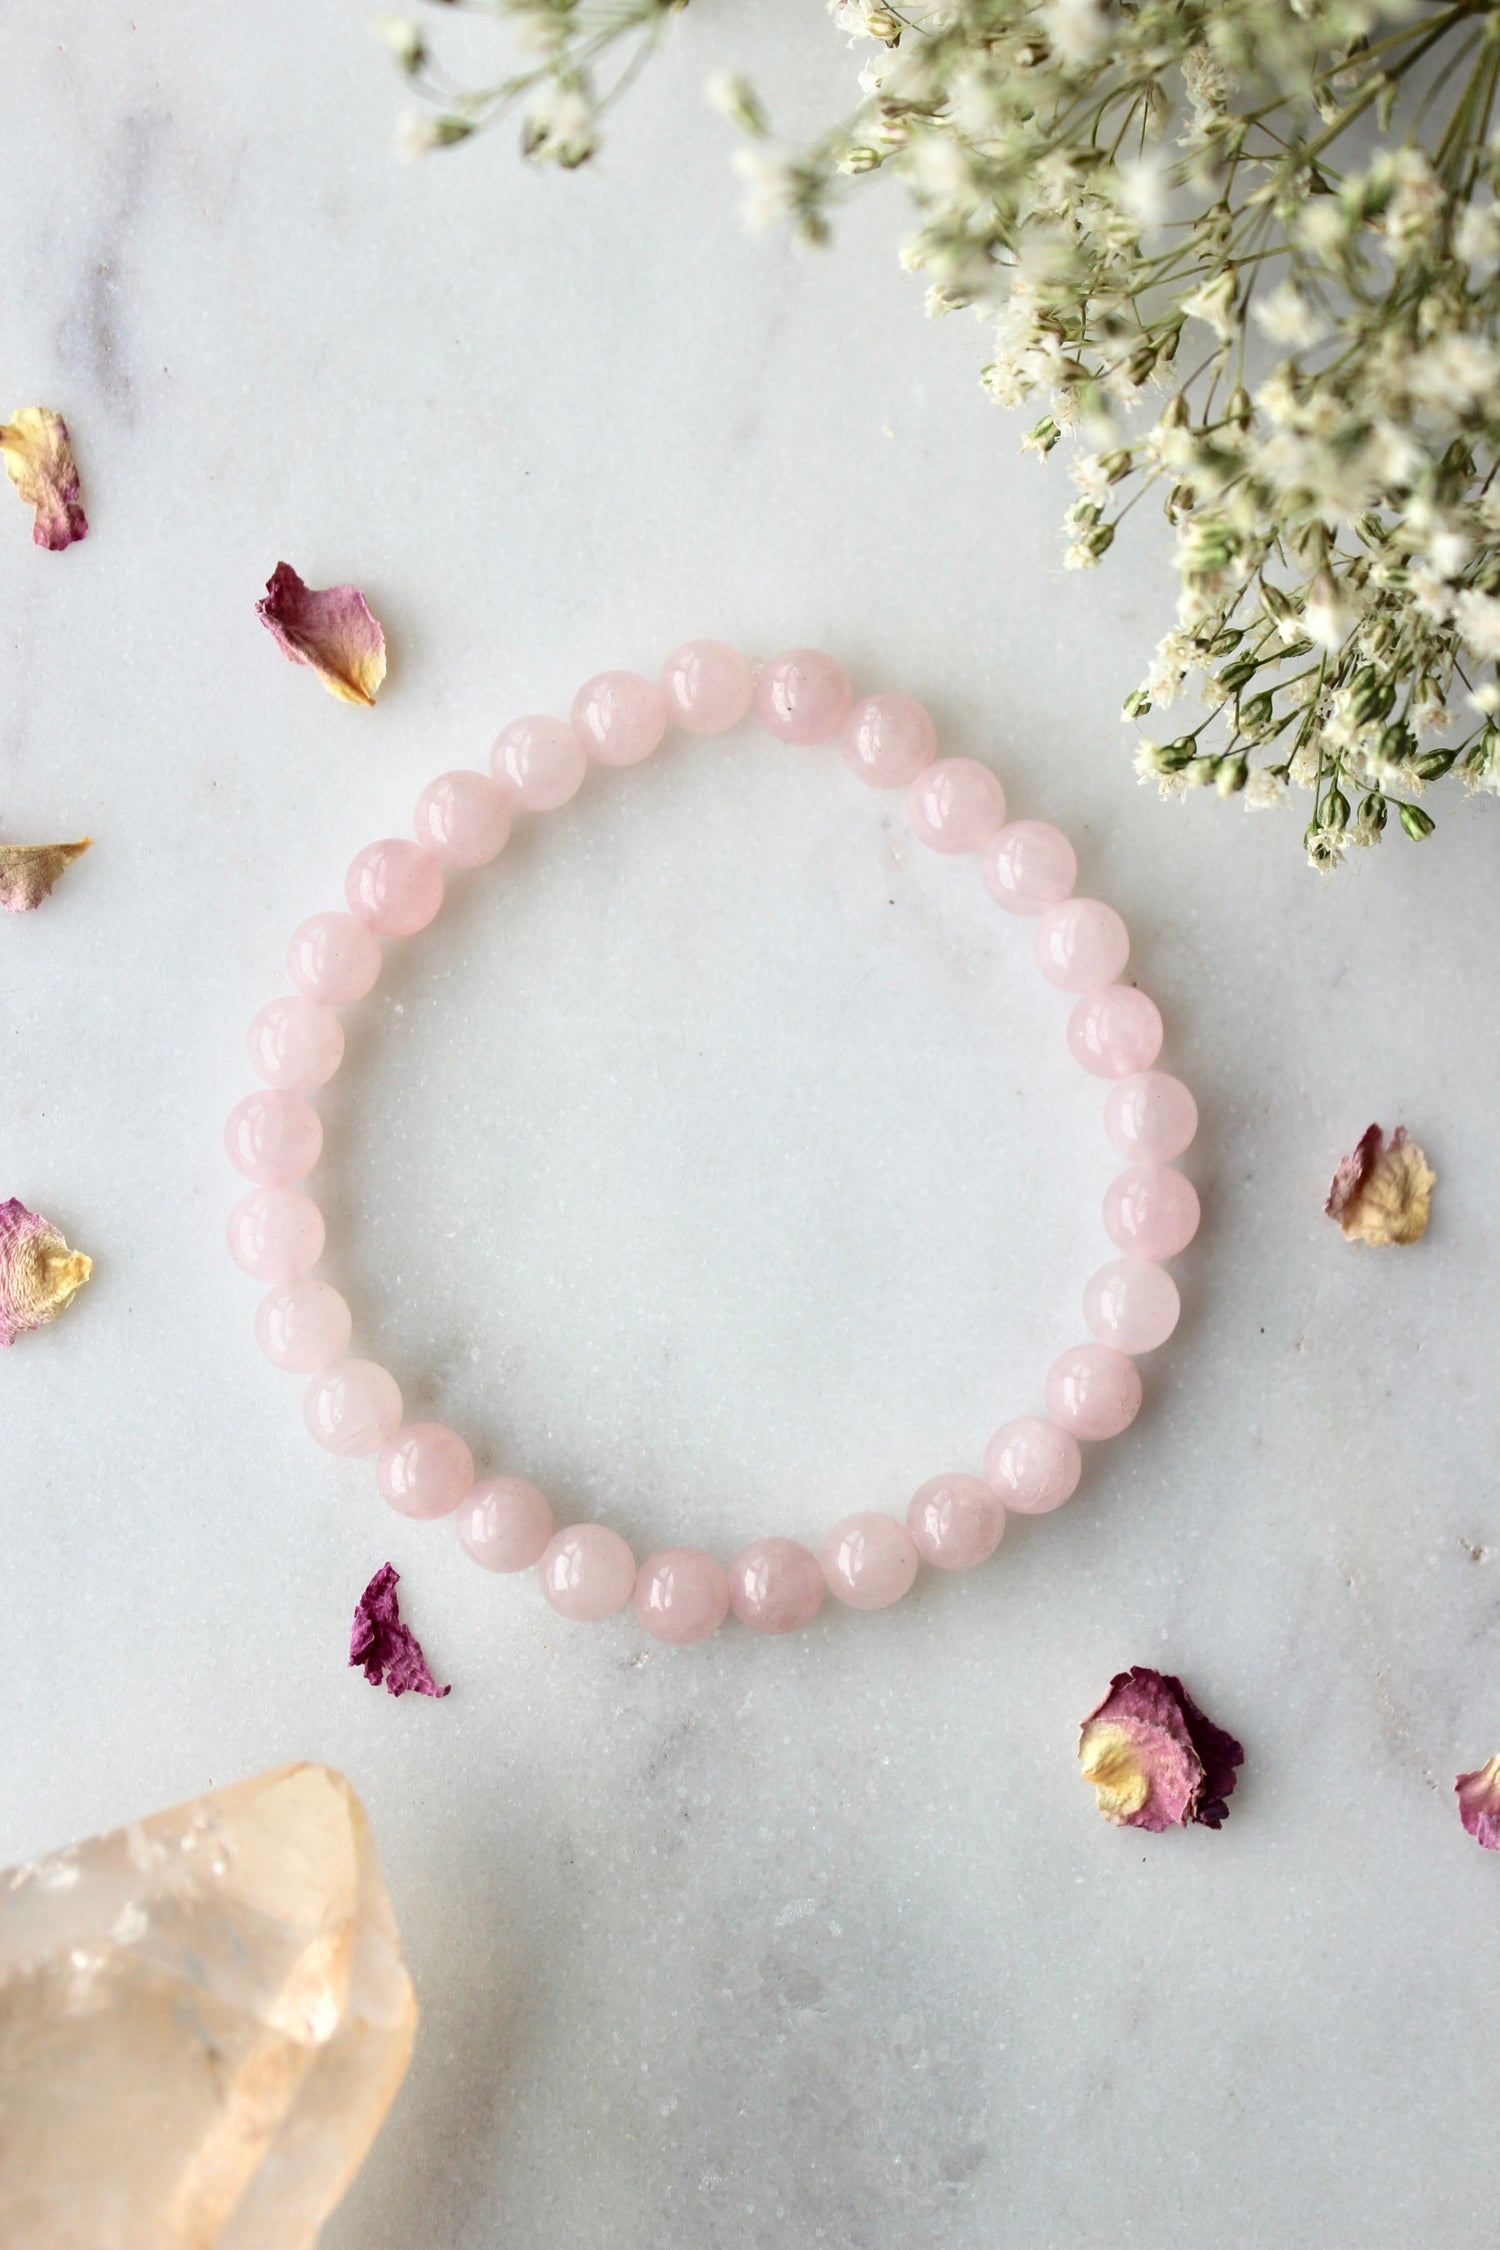 Image of Rose Quartz Stacking Bracelet